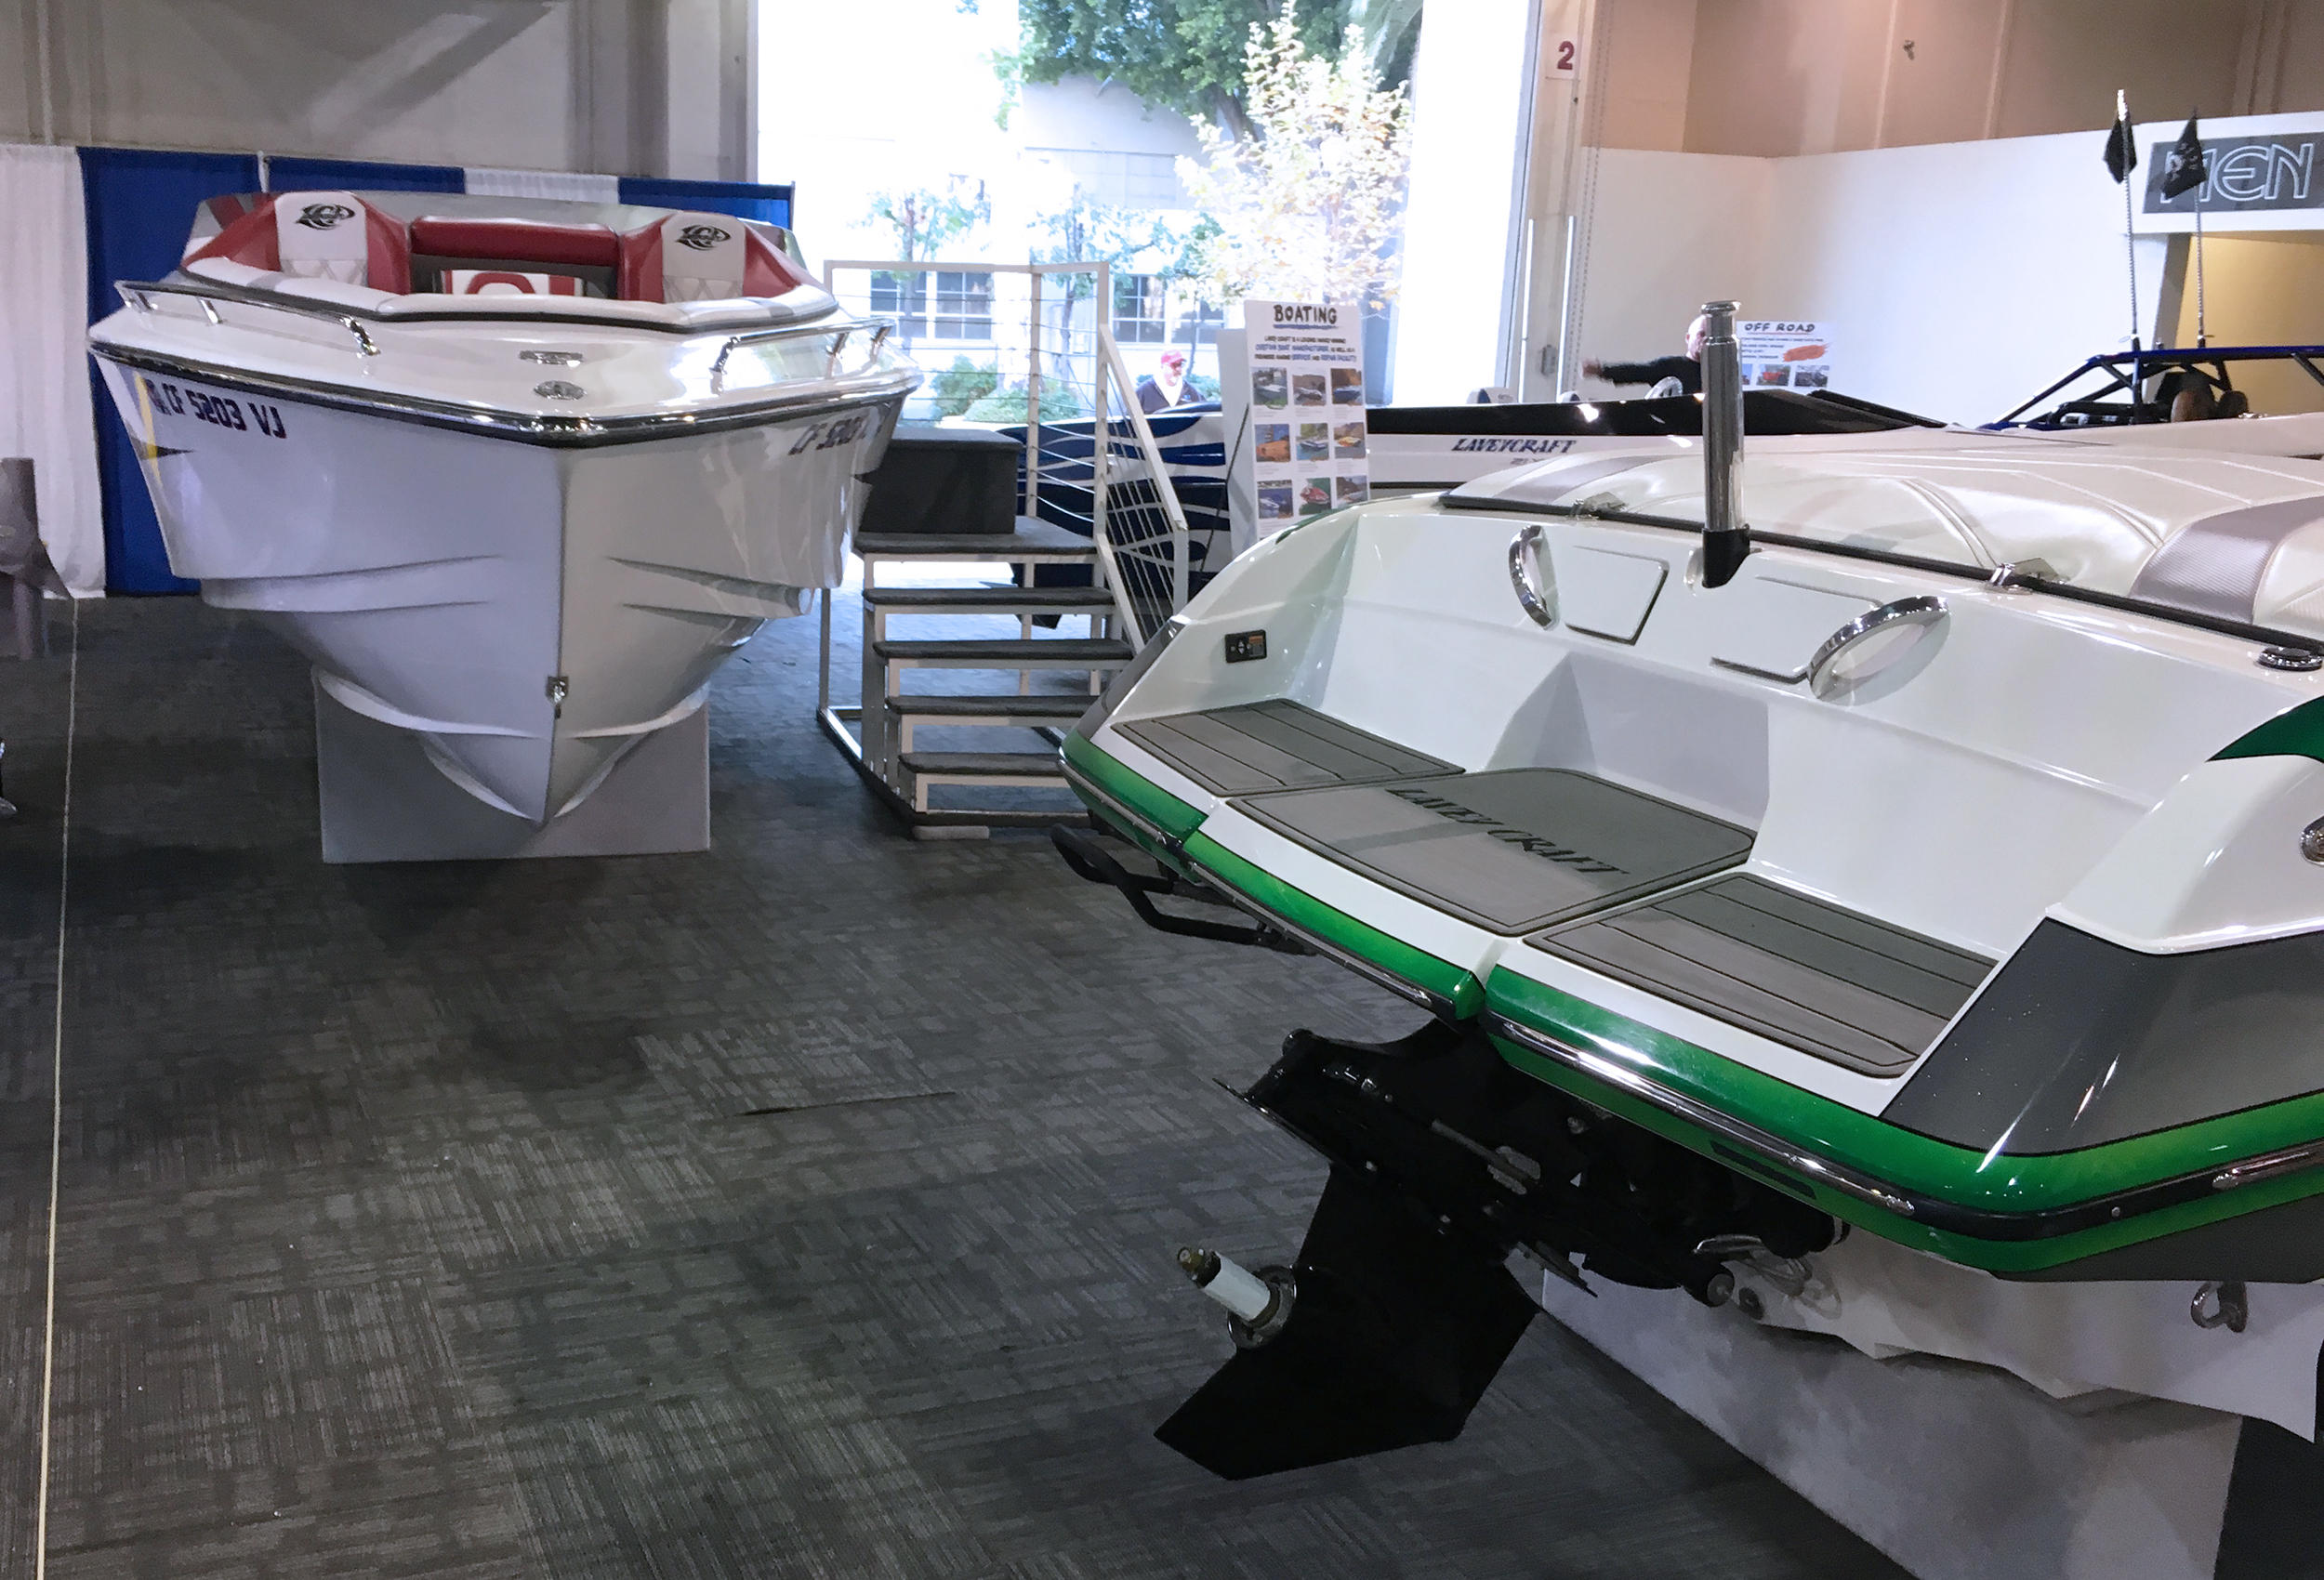 LA Boat Show 2019 - Lavey Craft booth - pic 4.jpg